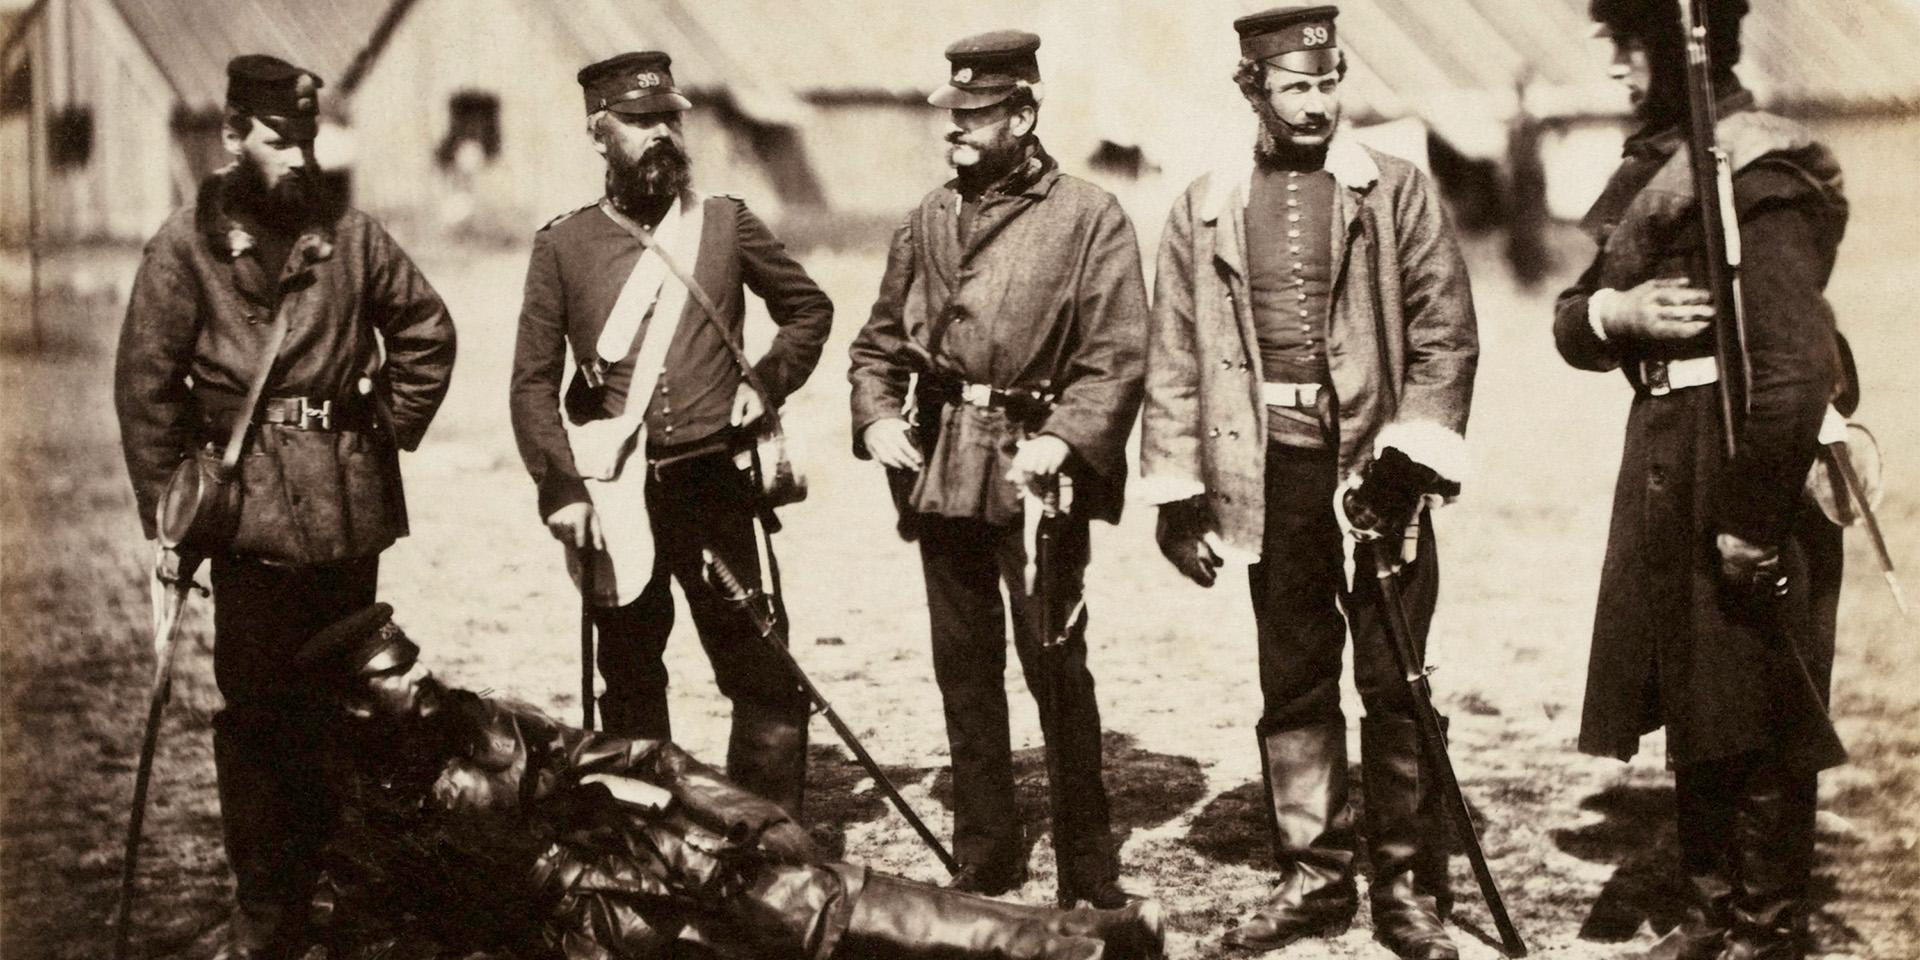 Lieutenant-Colonel Munro and officers of the 39th (Dorsetshire) Regiment, Crimea, 1855